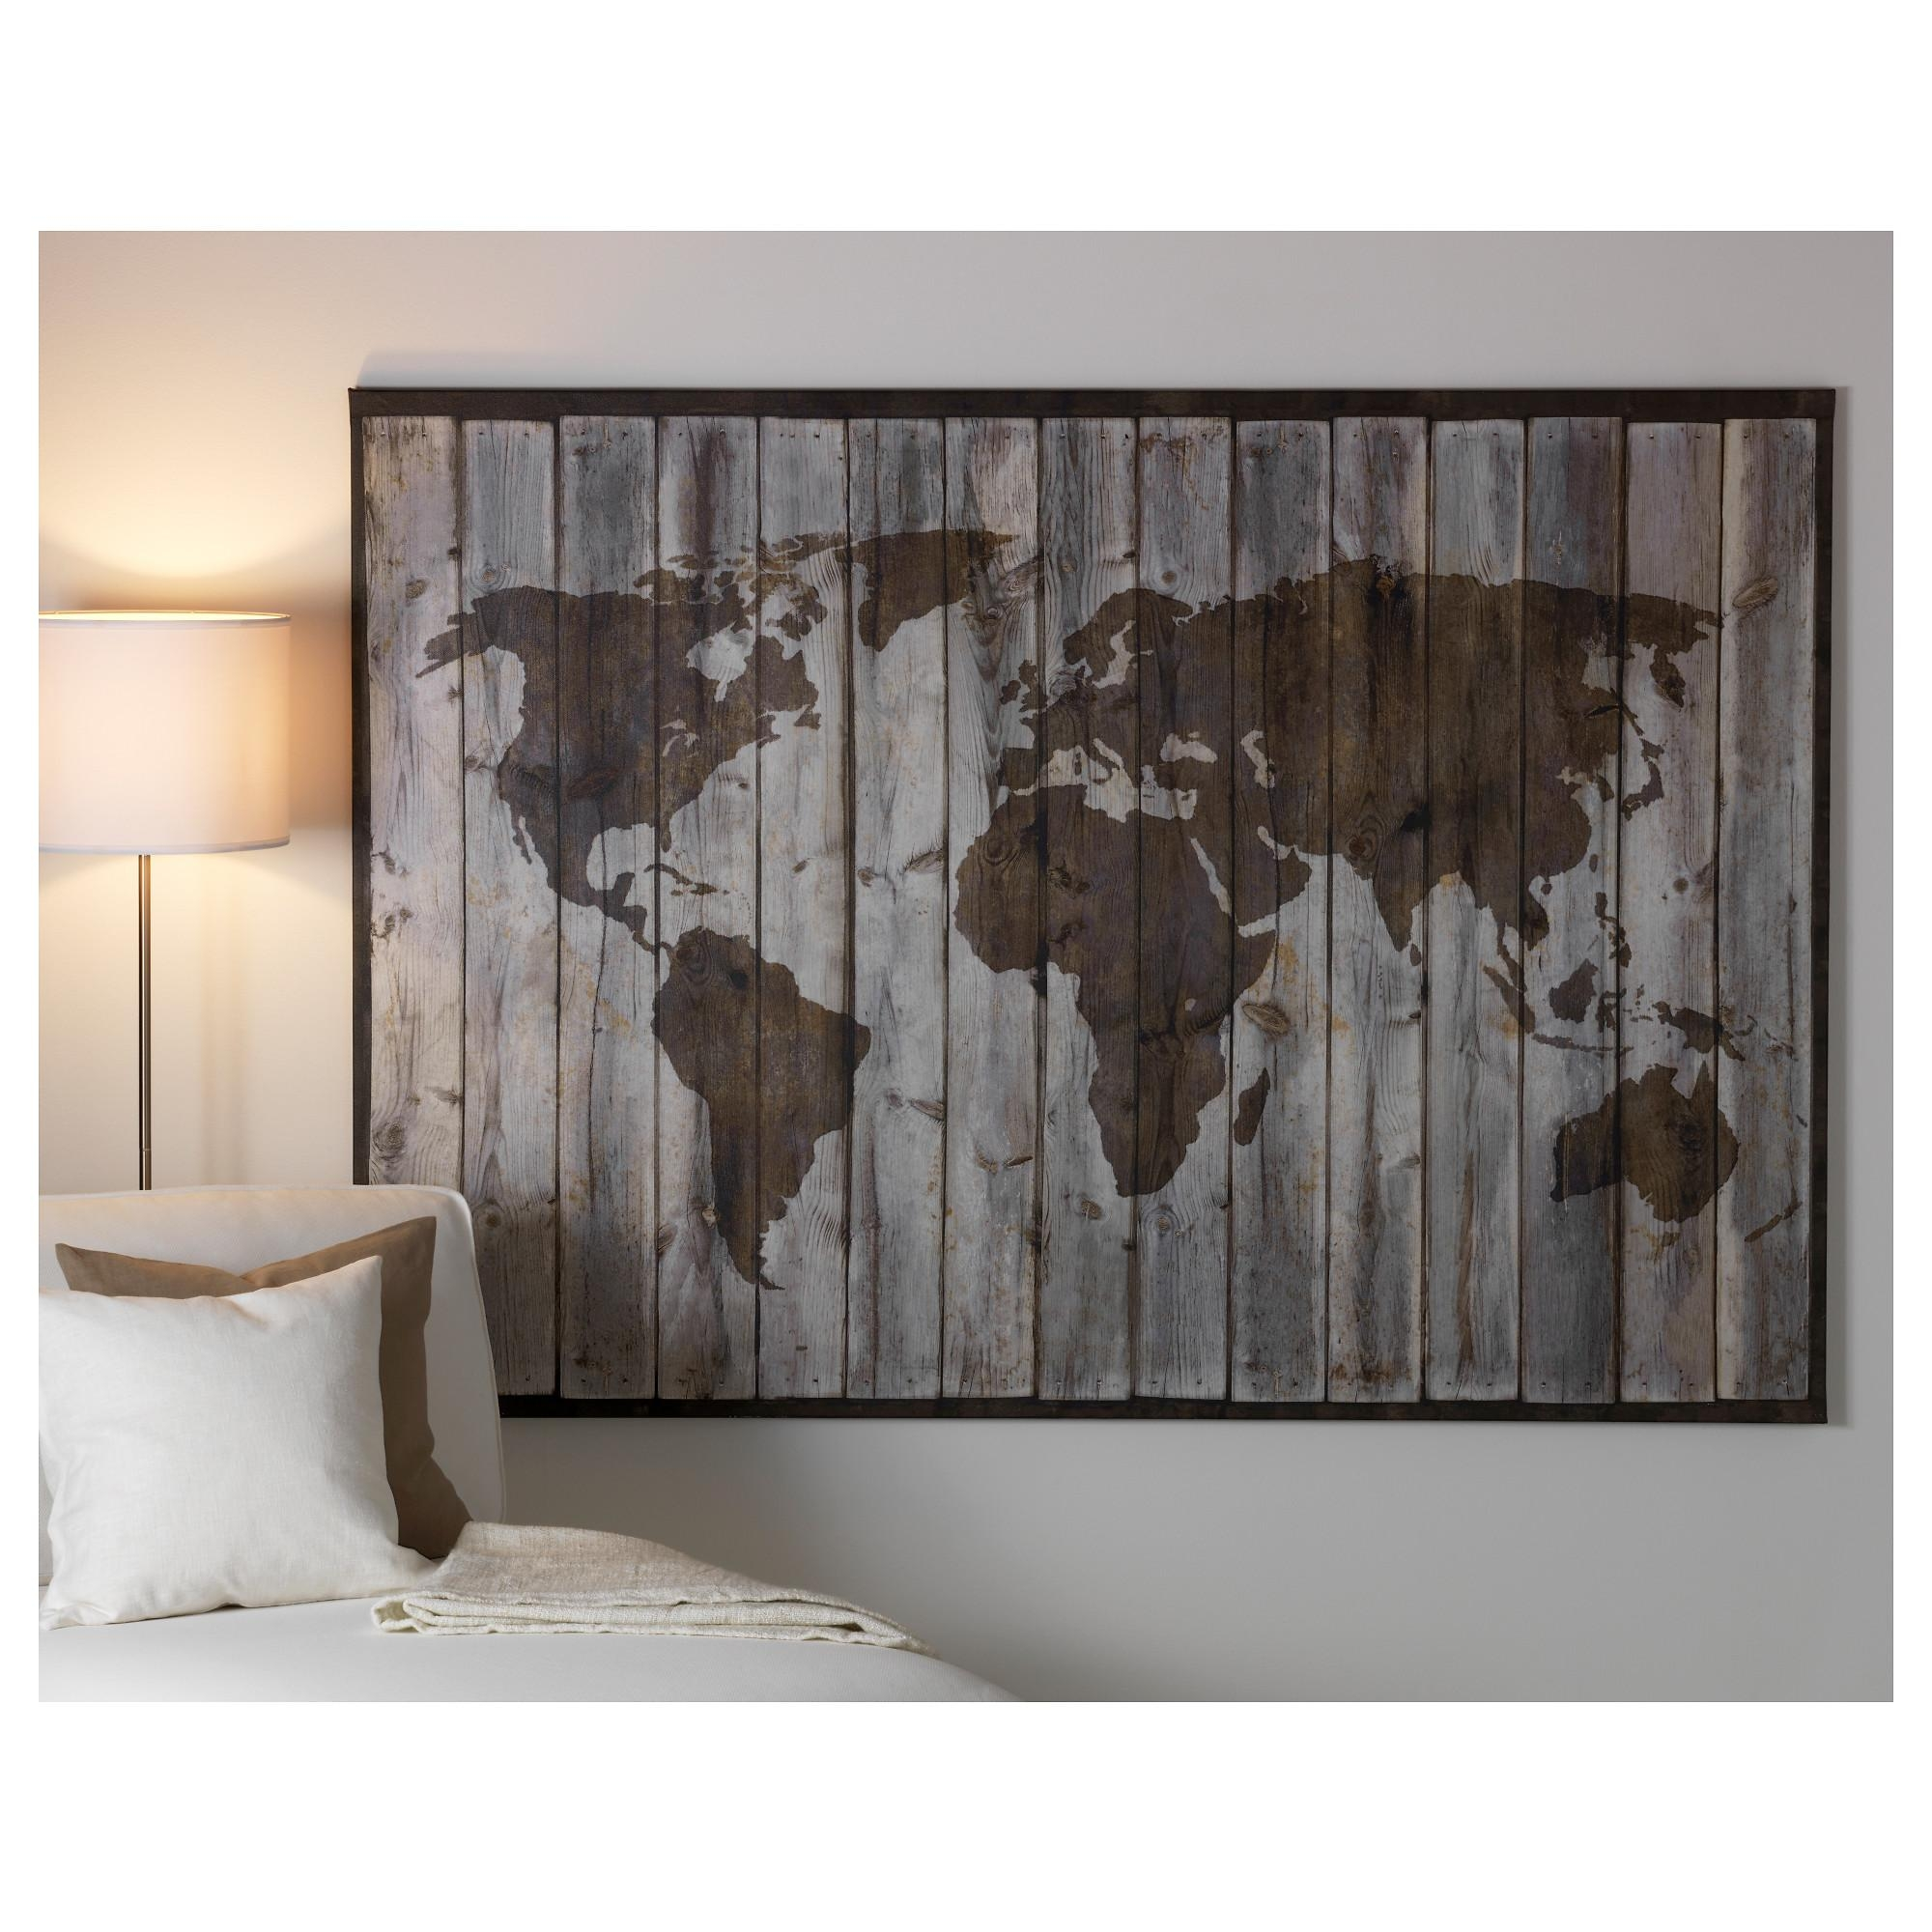 Ikea Premiar World Map Discontinued : Ikea Premiar World Map Within Ikea Giant Wall Art (View 7 of 20)